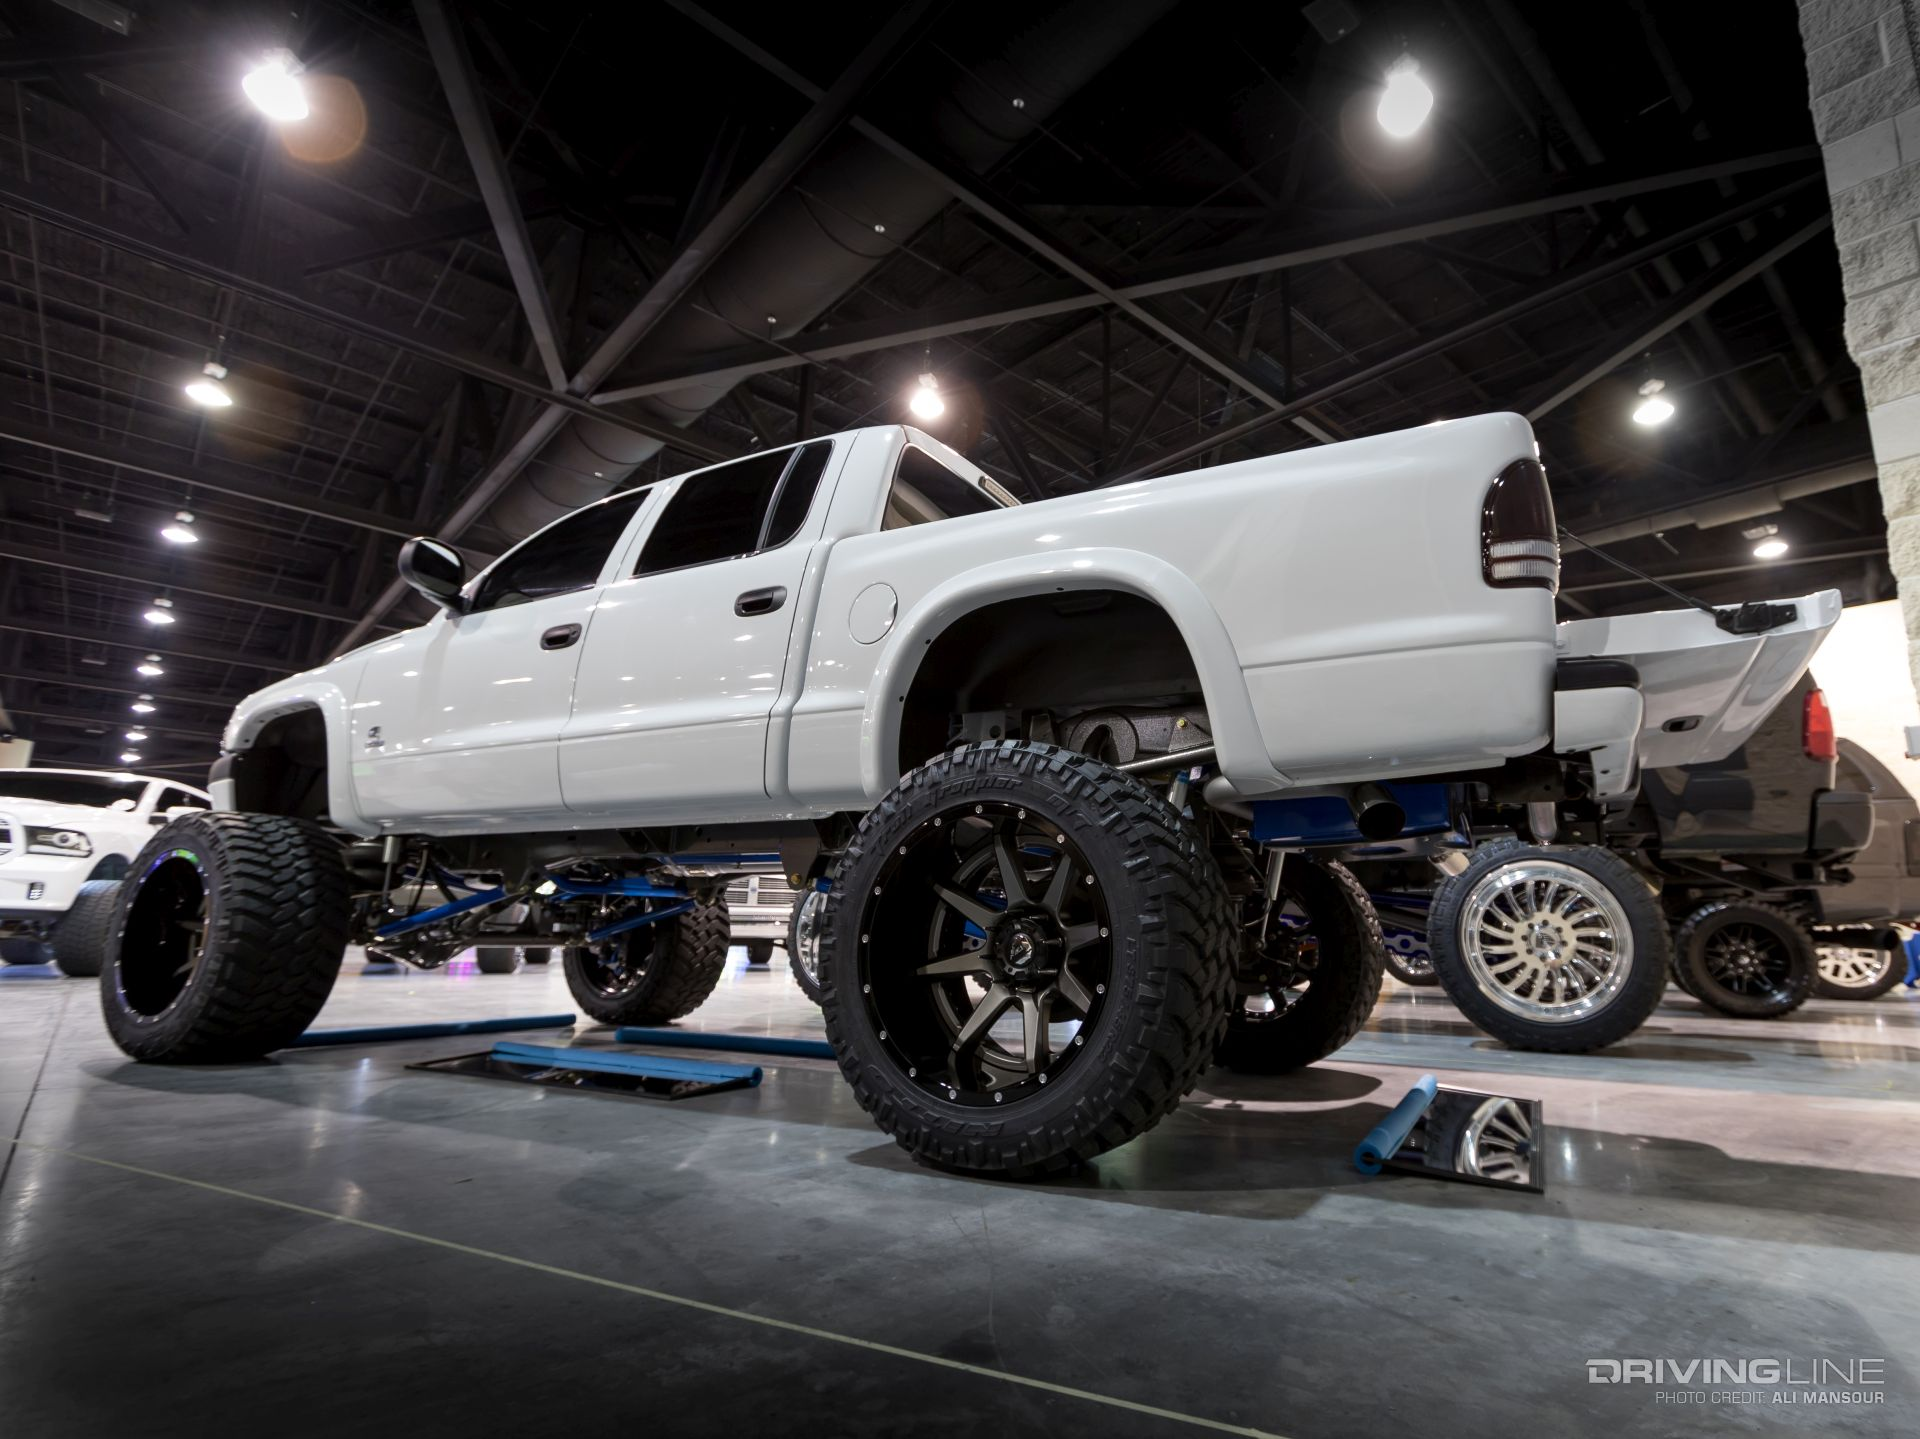 hight resolution of 012 2000 dodge dakota solid axle 4bt trail grapplers preview image